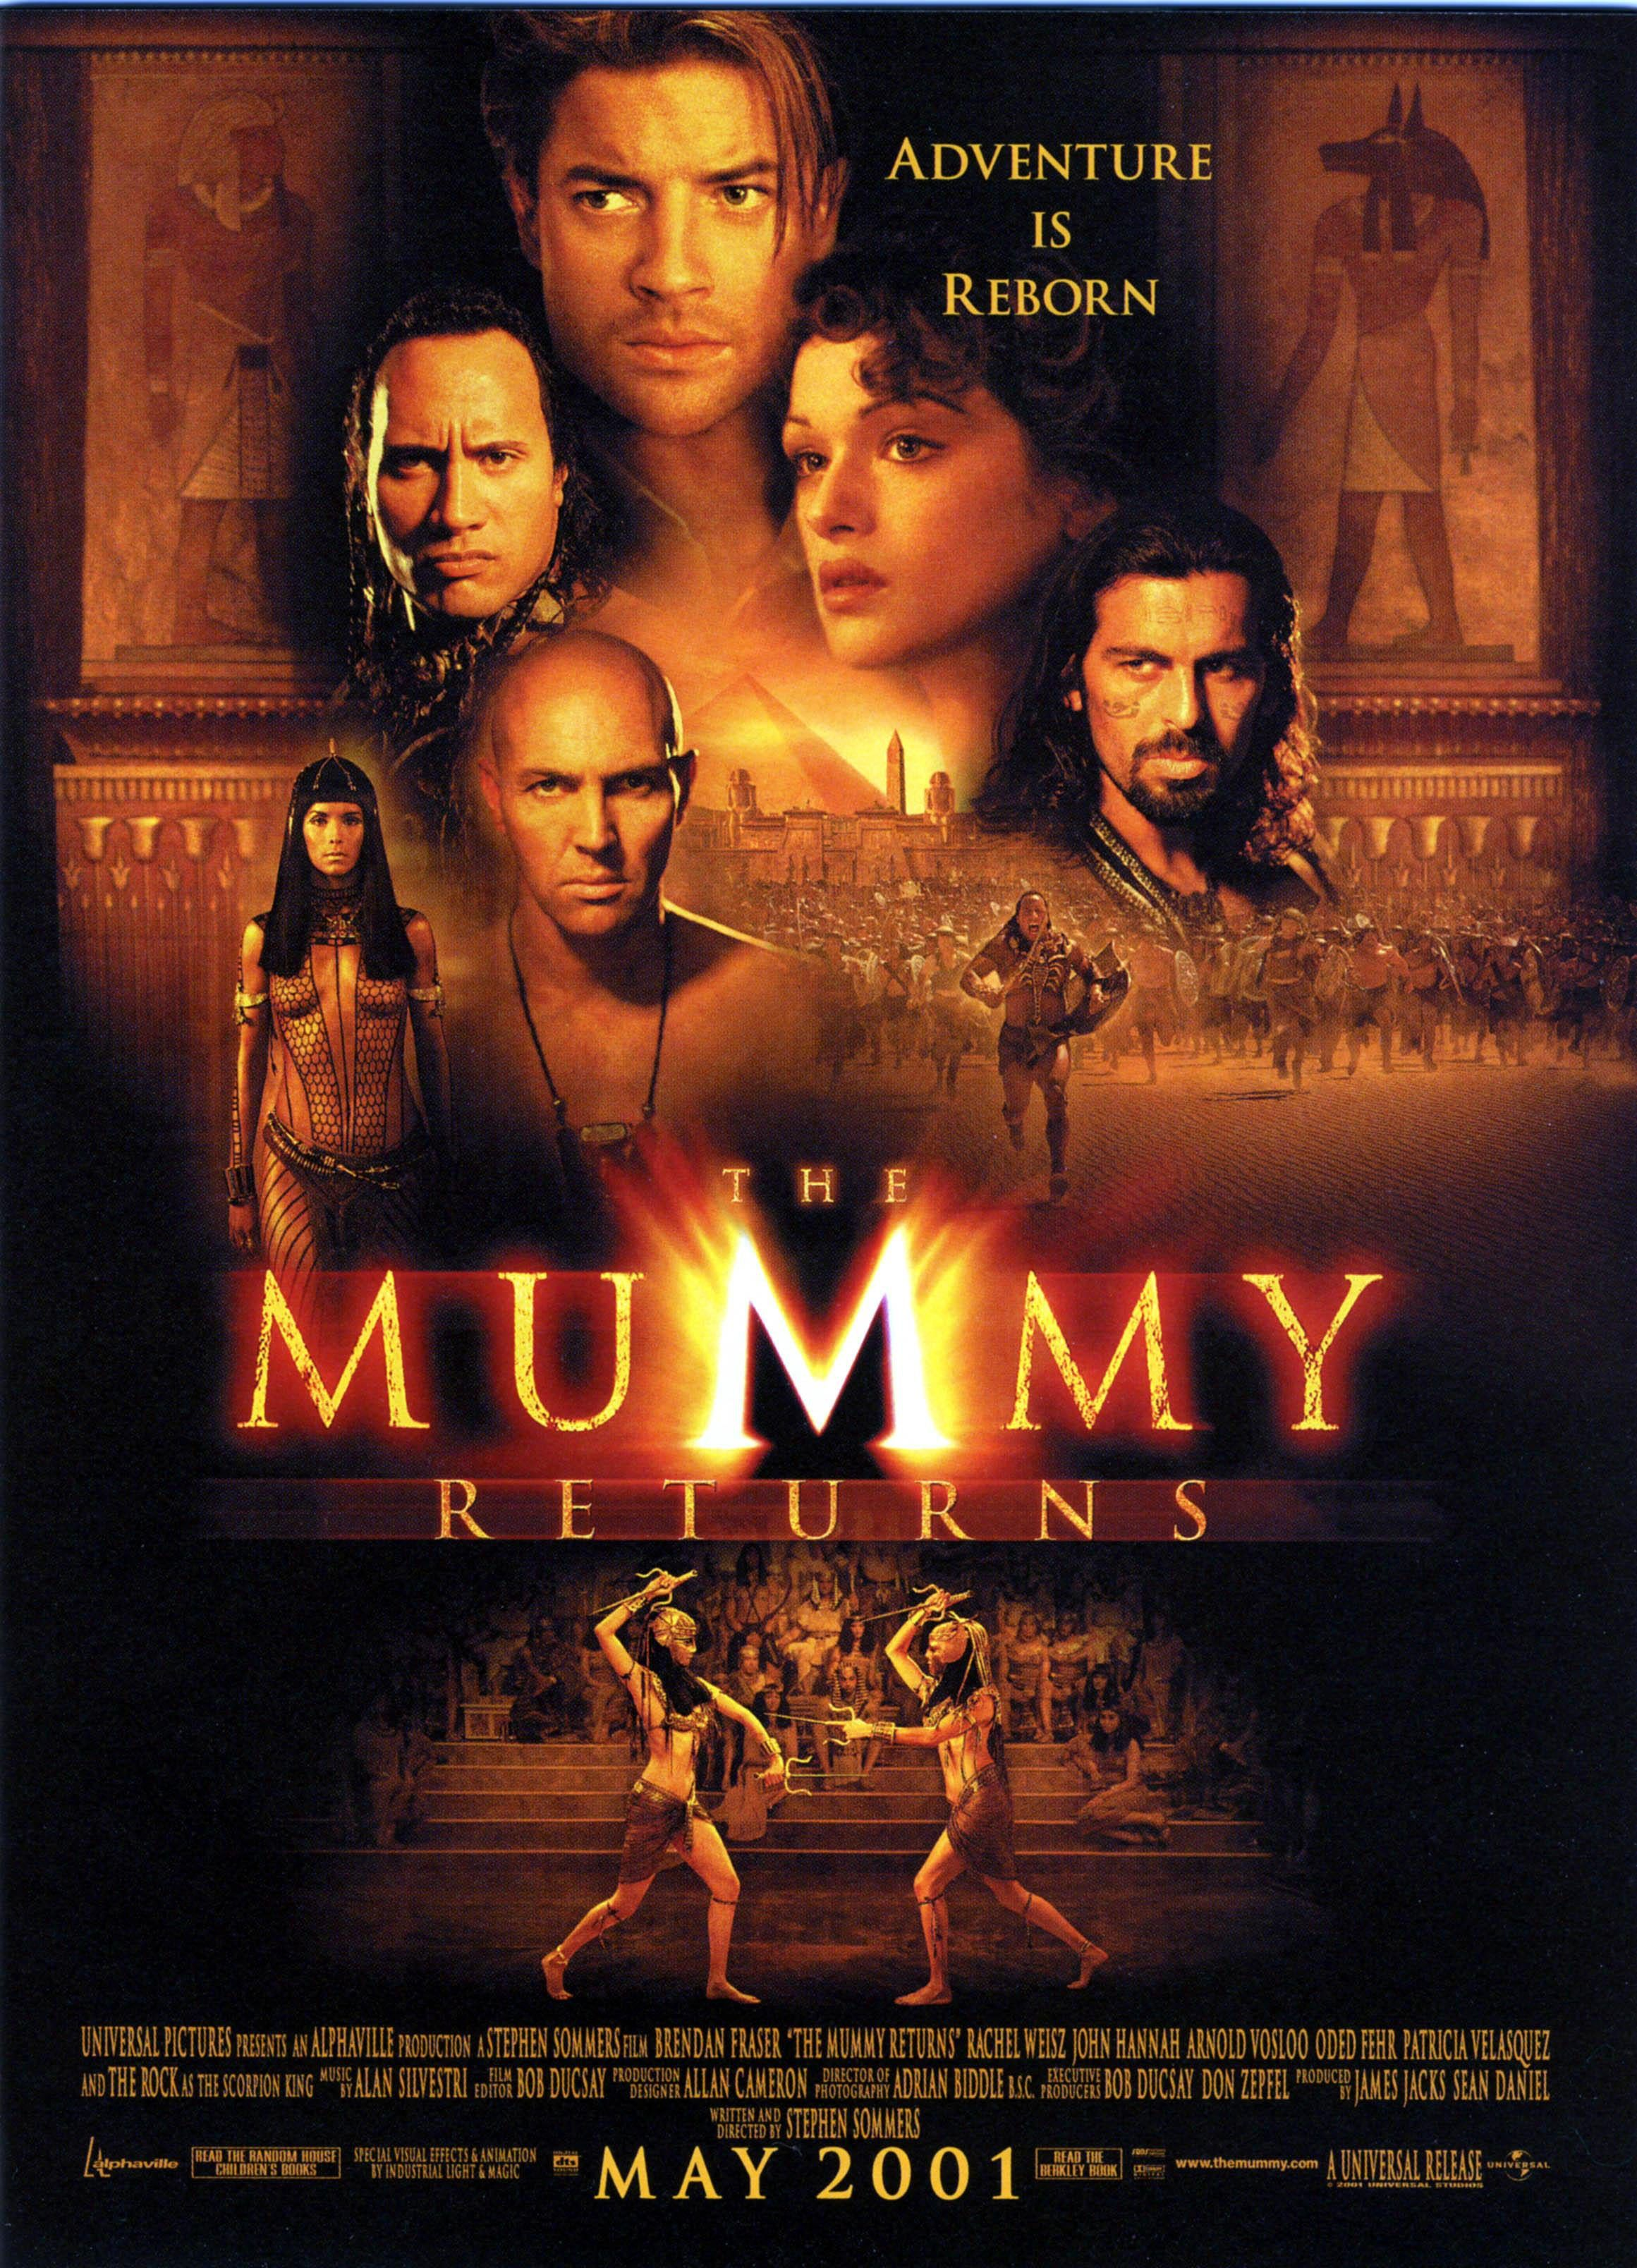 Cartel Estados Unidos De The Mummy Returns (El Regreso De